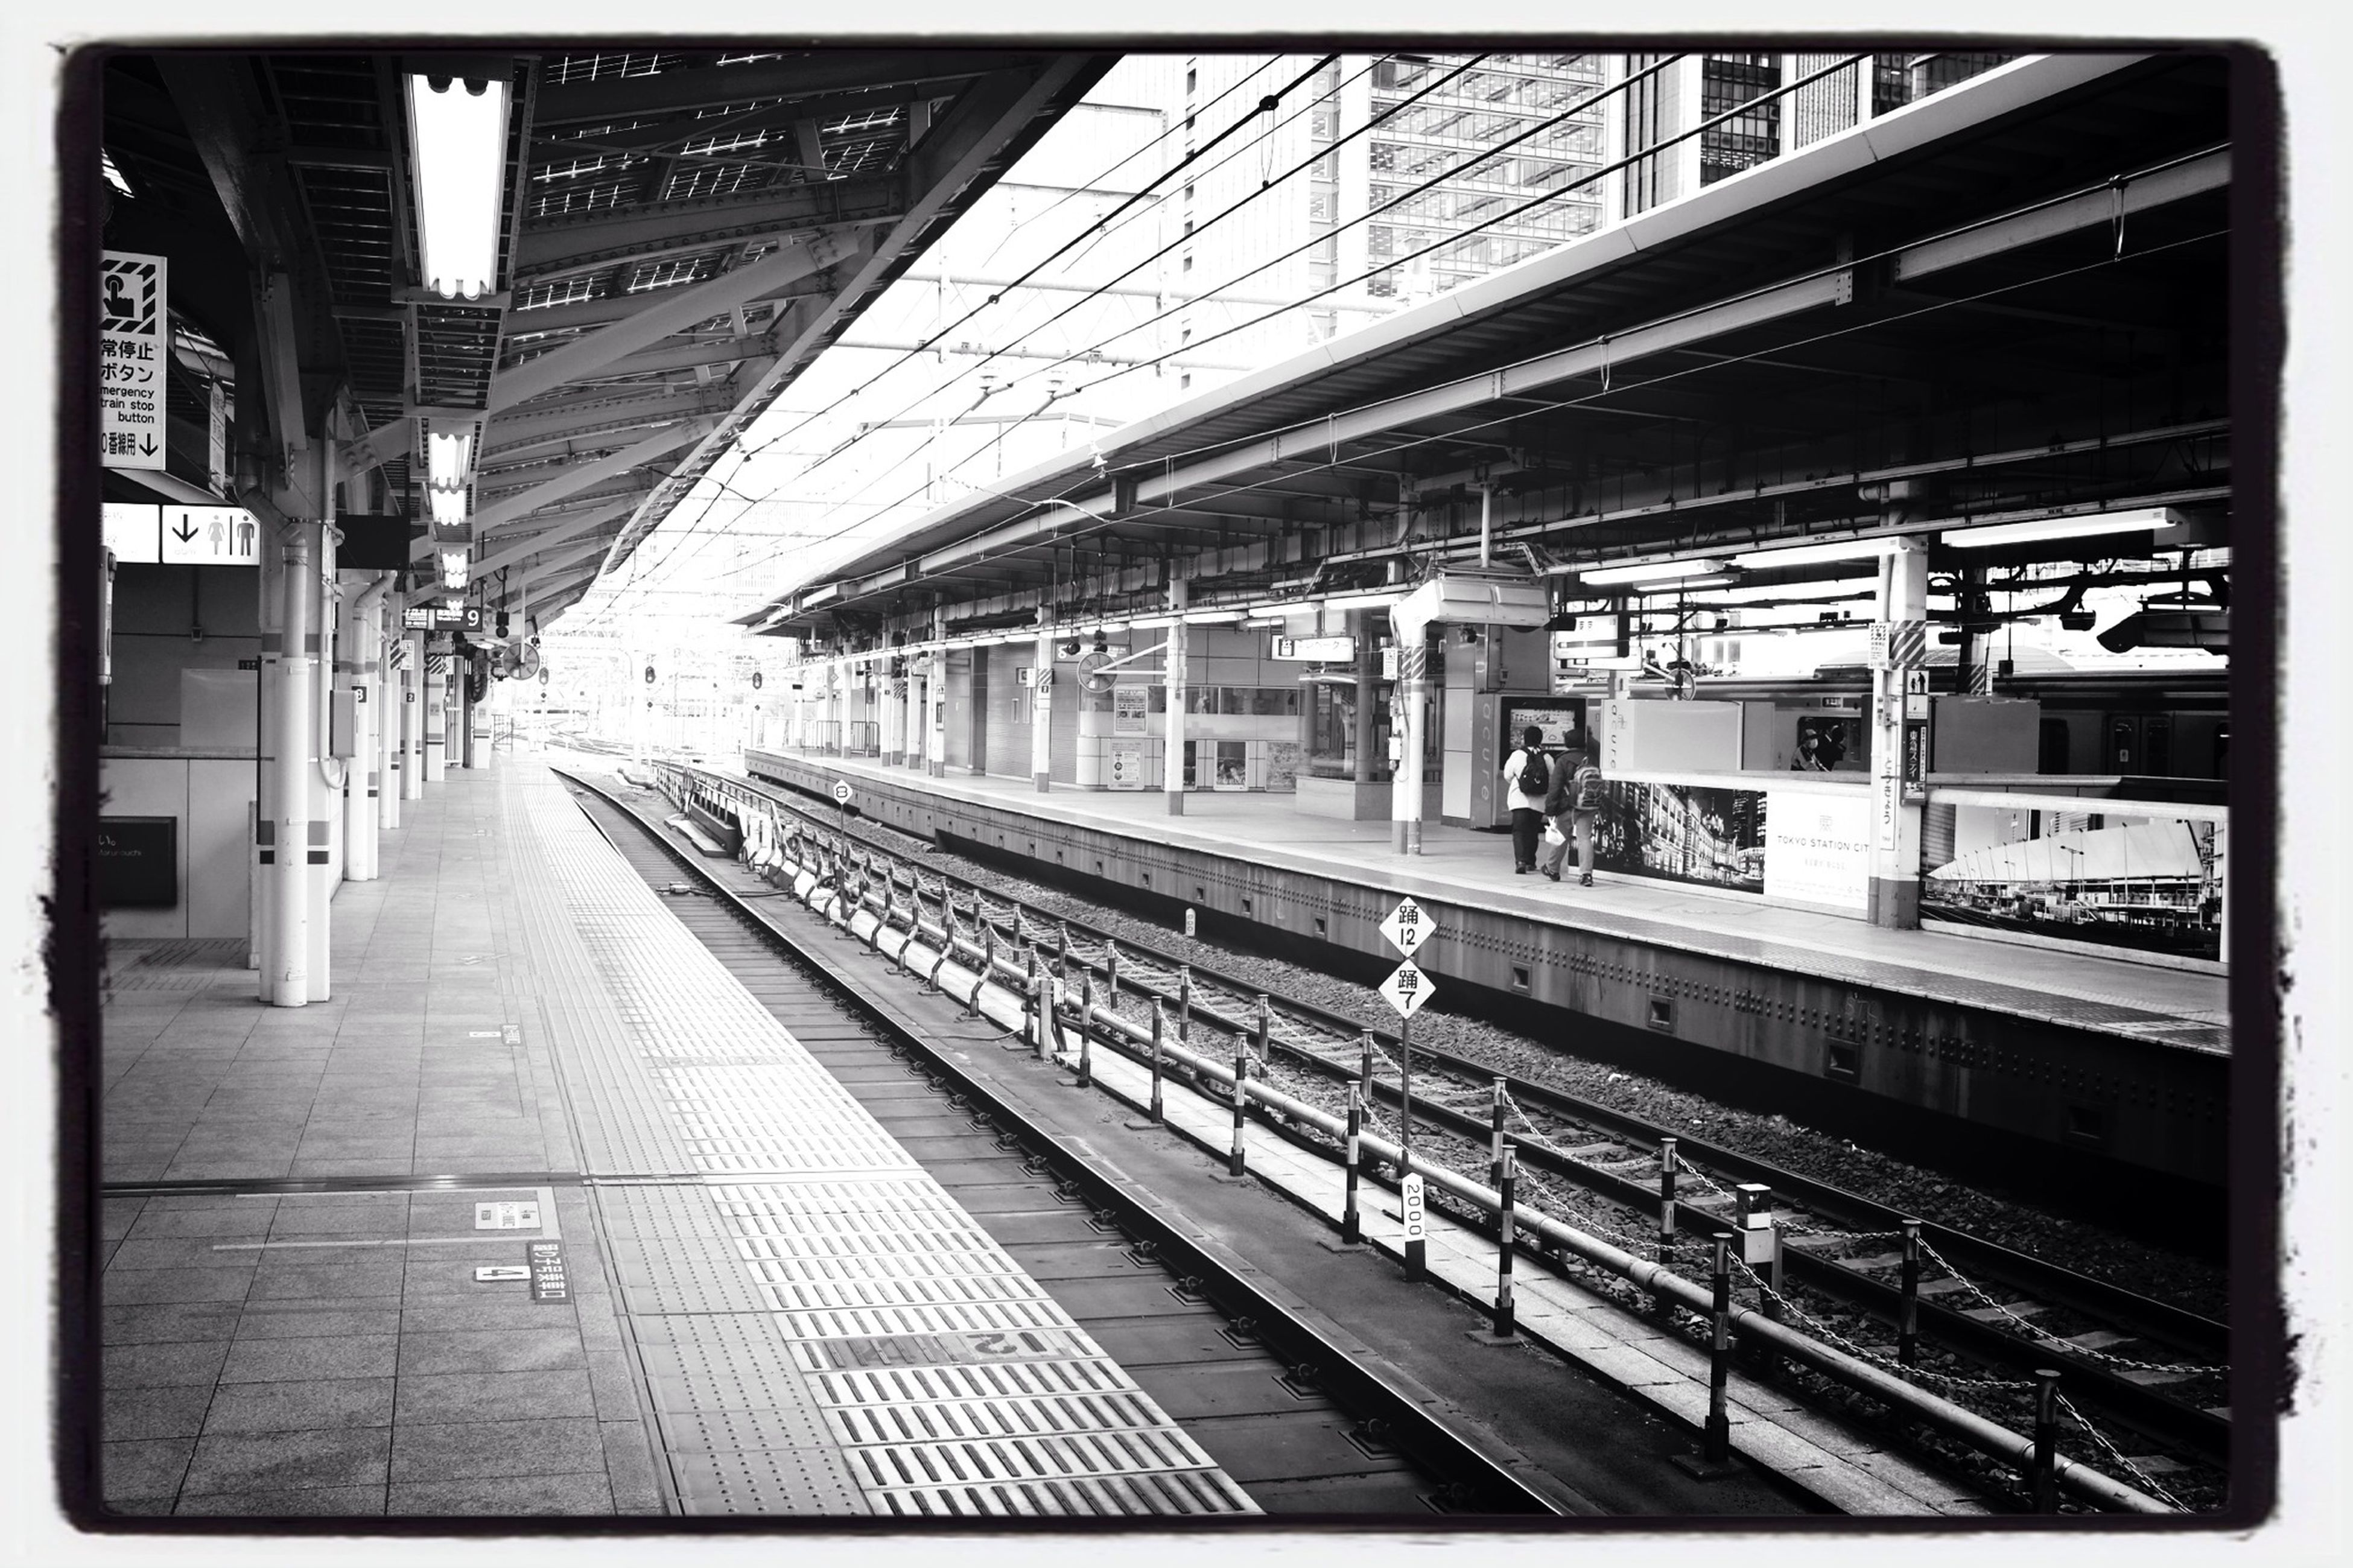 railroad station platform, railroad station, rail transportation, public transportation, railroad track, transportation, transfer print, train - vehicle, architecture, indoors, built structure, travel, passenger train, public transport, subway station, train, men, railway station, person